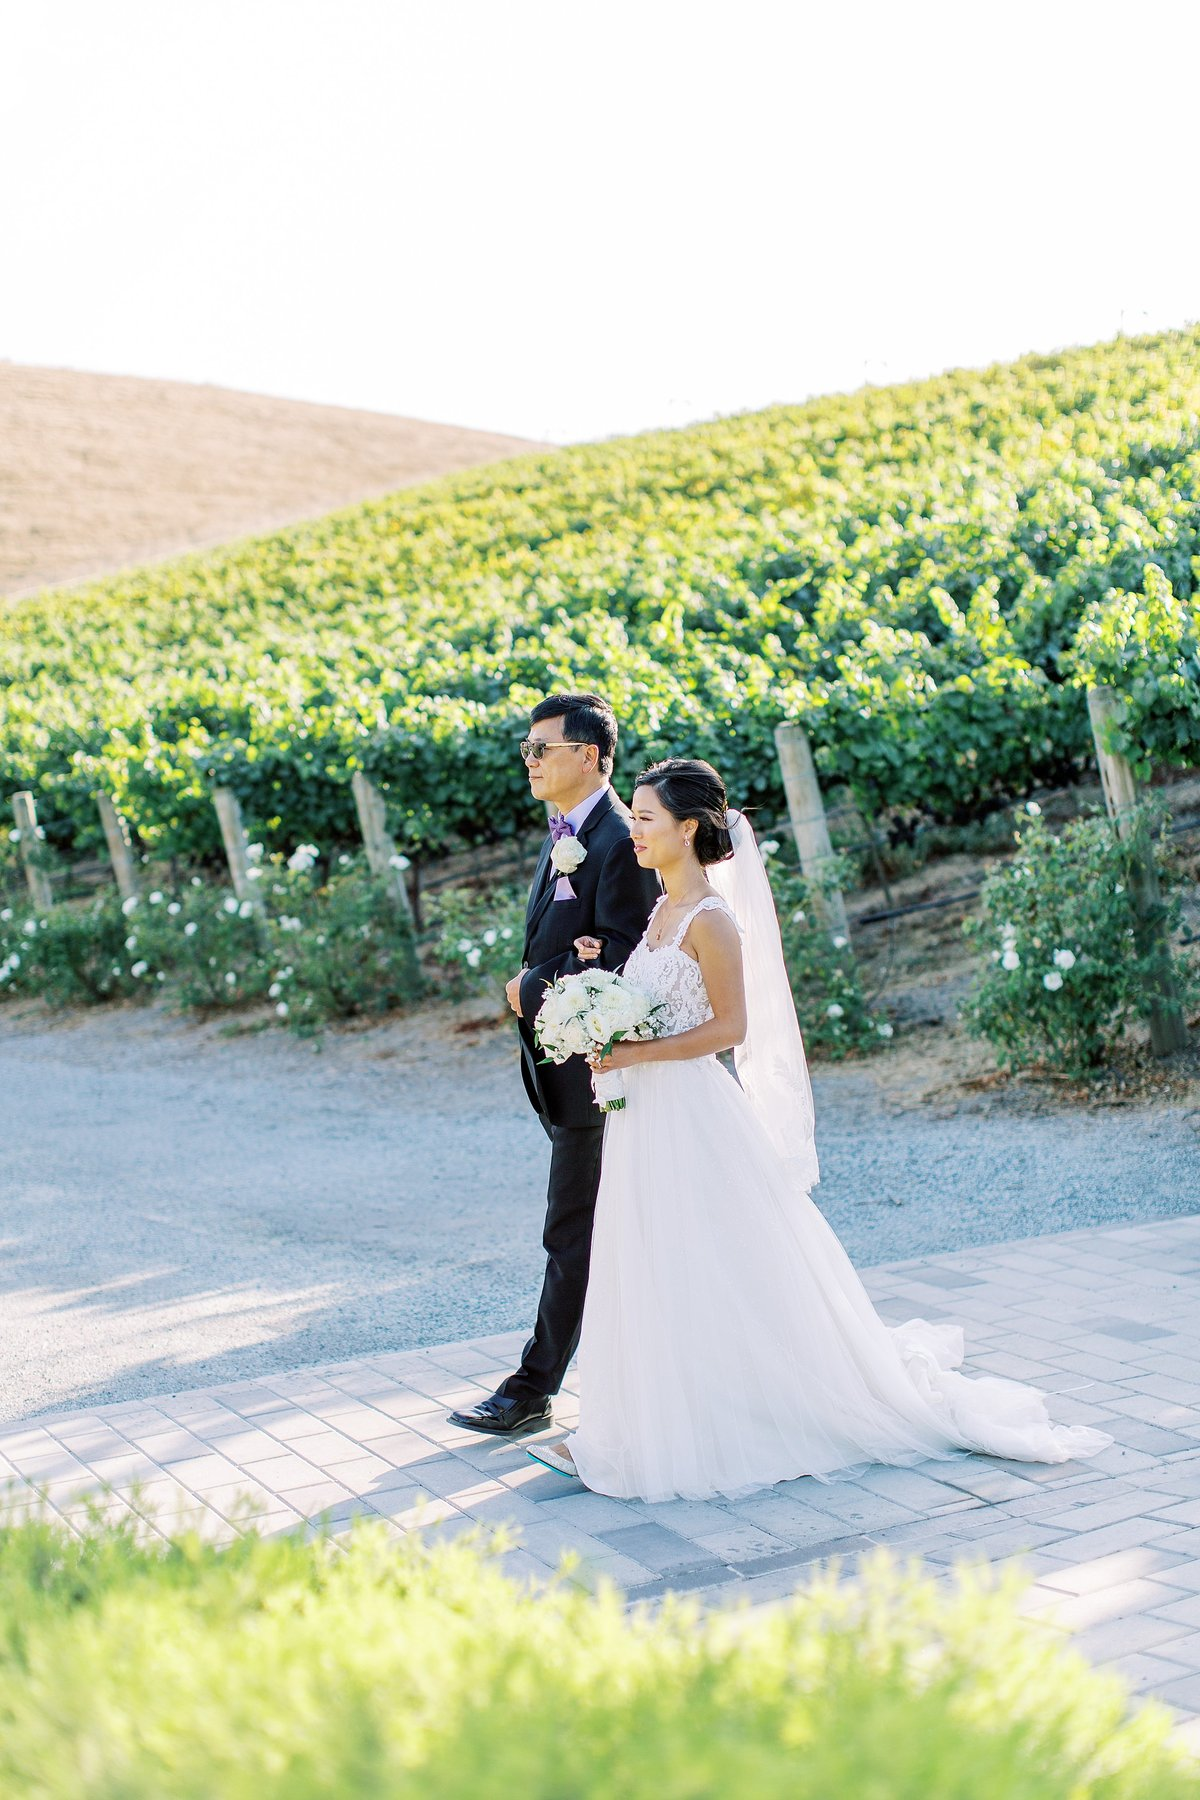 20190928Cammane and Simon's Vineyard Wedding_Nella Terra Cellars_Sunol_Bethany Picone Photography - 140_WEB